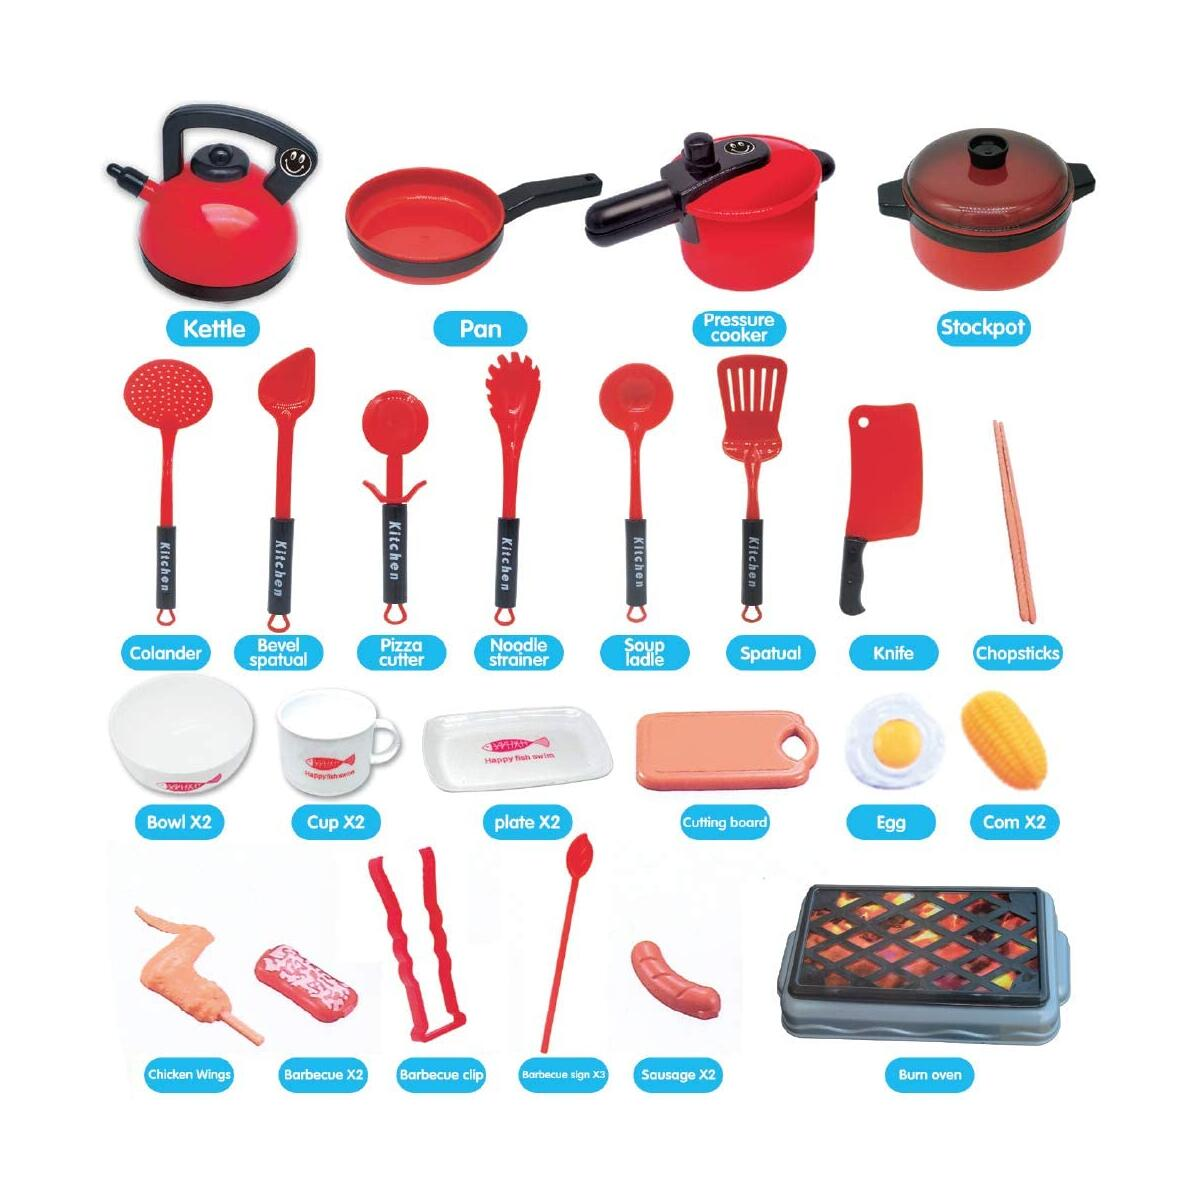 Happytime 36 Pieces Cooking Pretend Play Toy Kitchen Cookware Playset Including Pots and Pans, Play Food, Cutting Vegetables, Toy Utensils